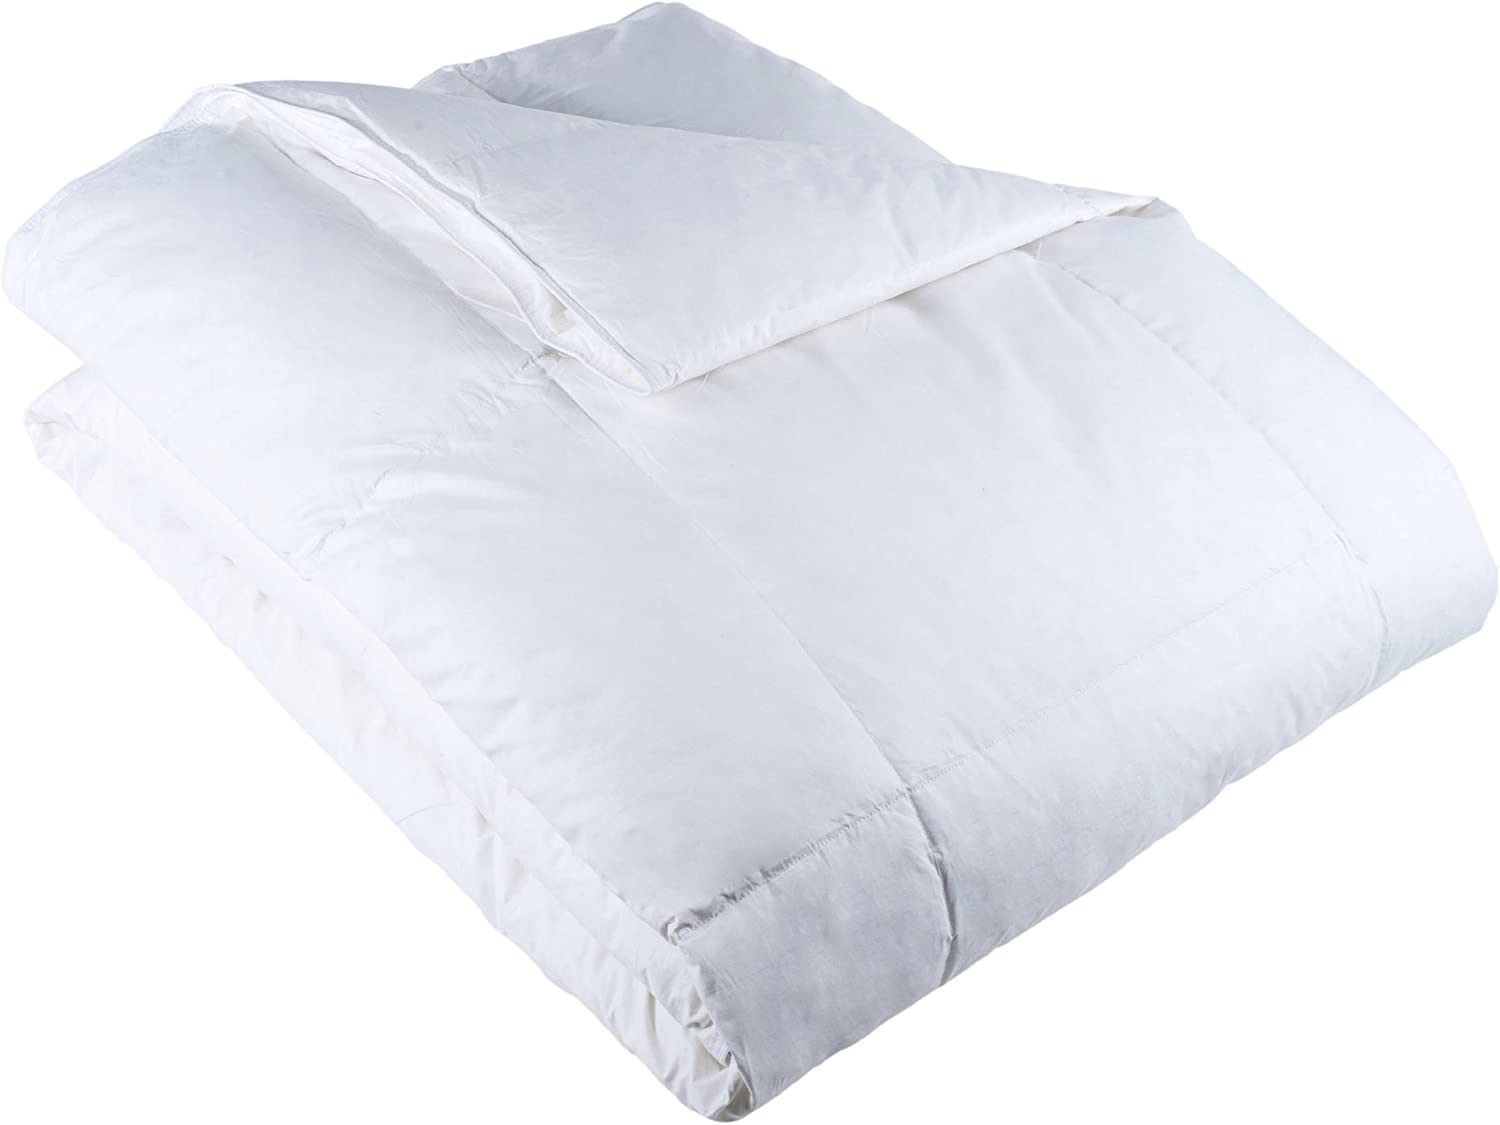 Lavish Home Full/Queen Comforter, Ultra-Soft White Goose Down Alternative Comforter, Hypo-Allergenic, Quilted Box Stitched, All Season Comforter